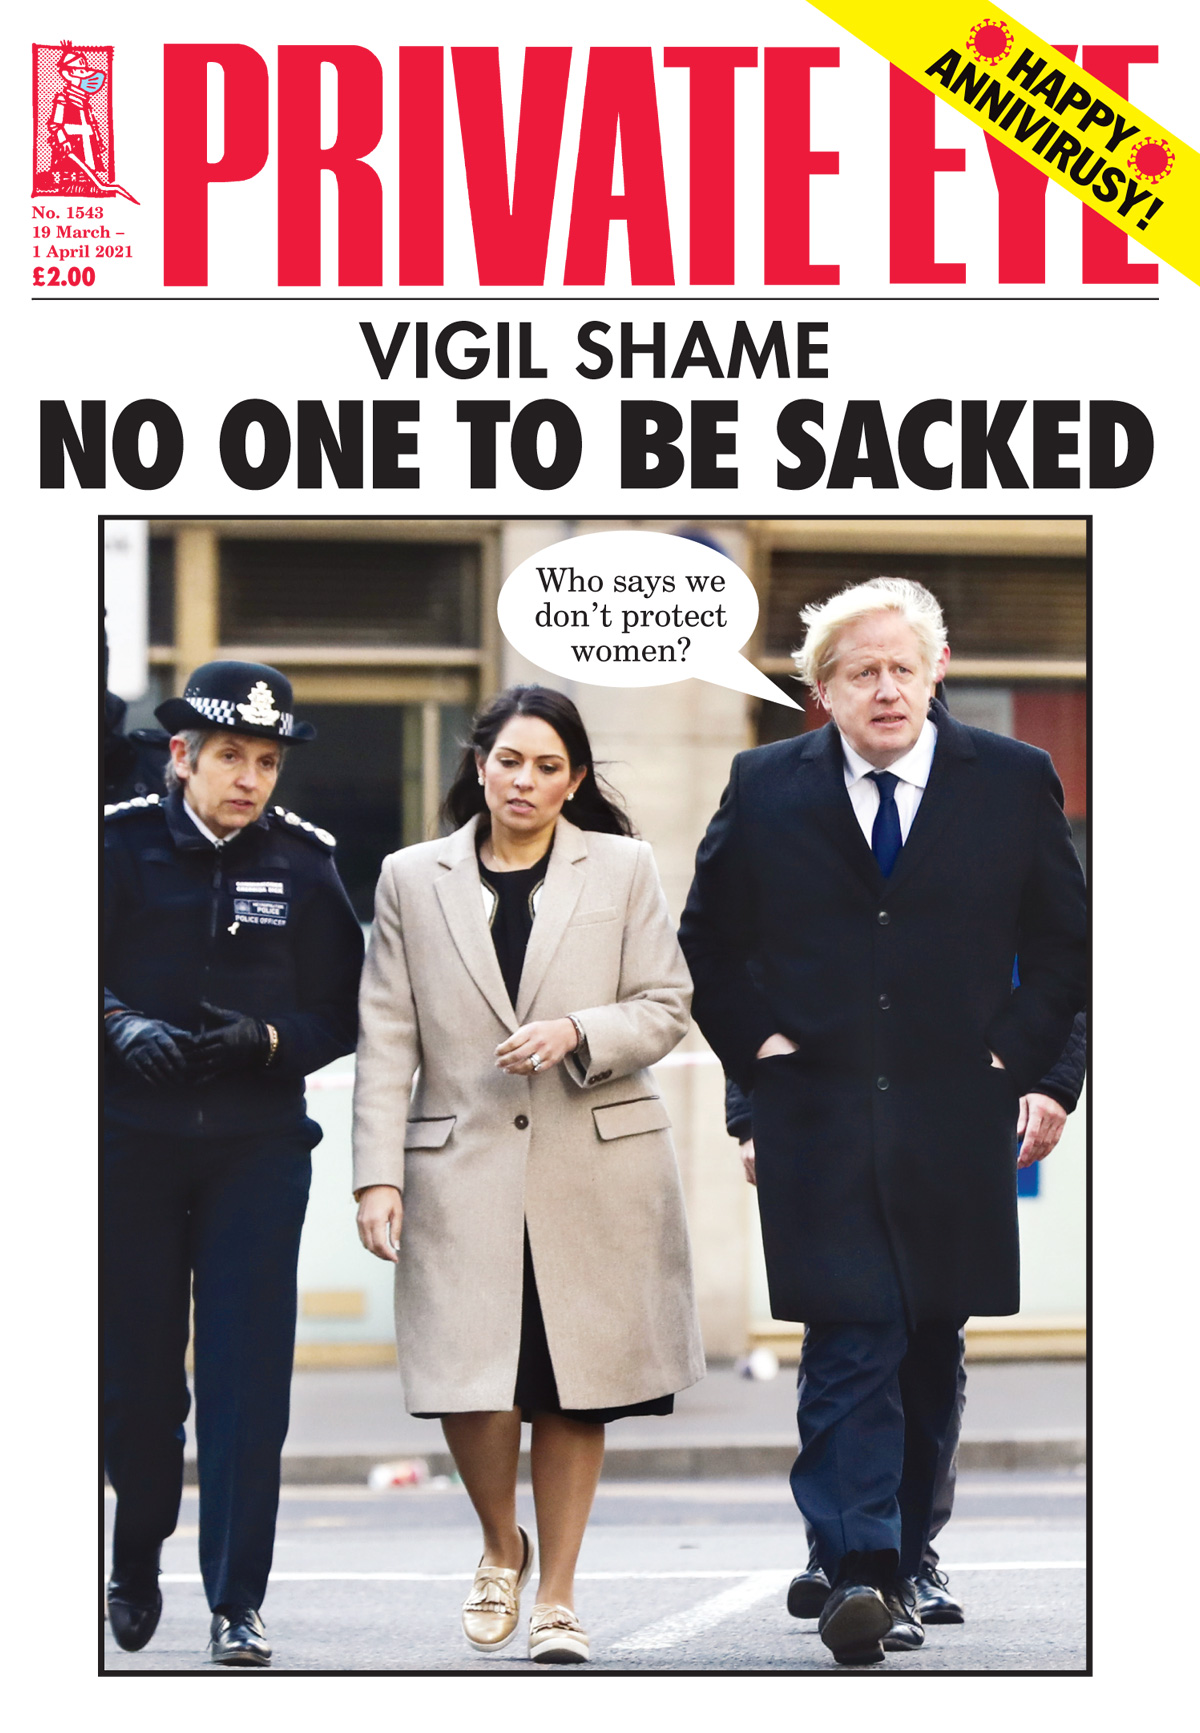 Boris Johnson Priti Patel Cressida Dick